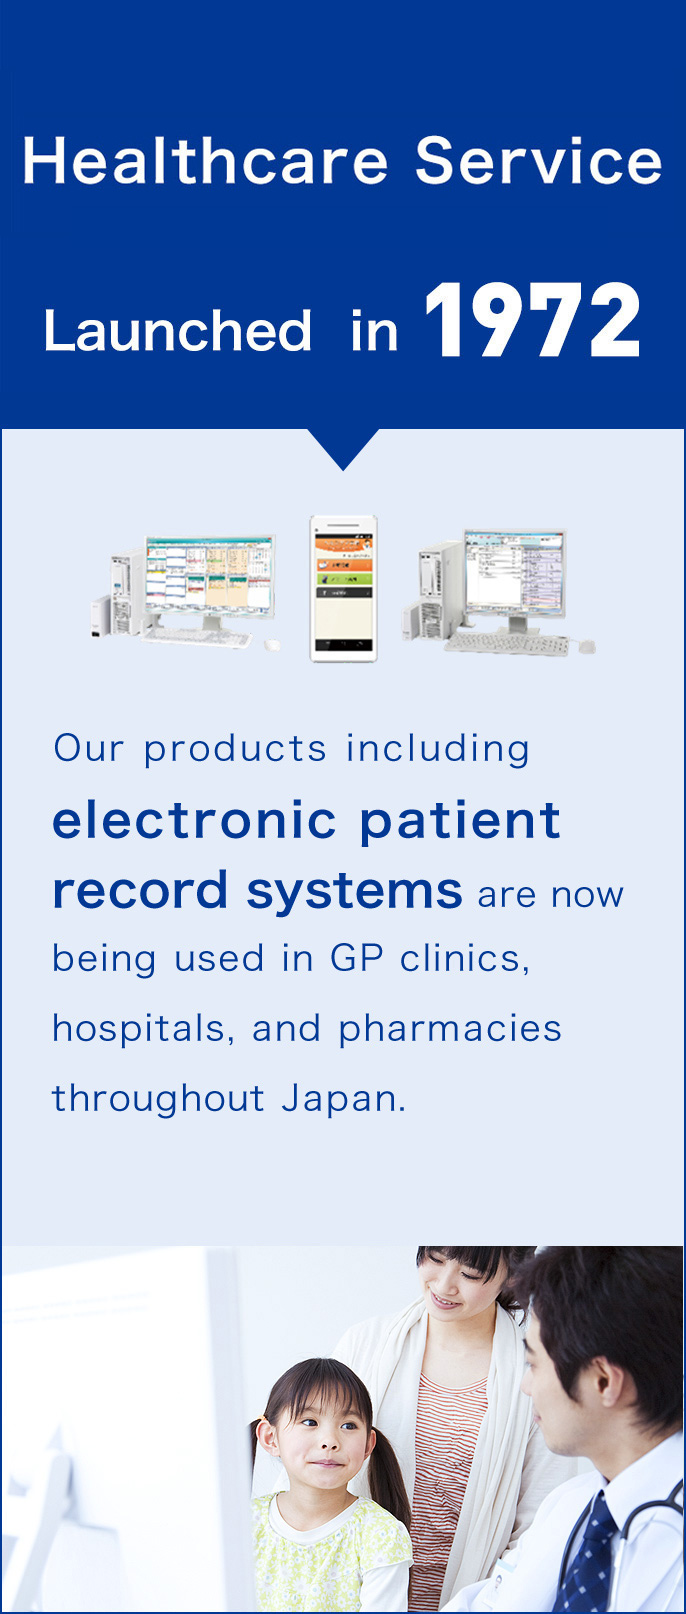 Healthcare Service(Healthcare IT), Launched  in 1972. Our products including electronic patient record systems are now being used in GP clinics, hospitals, and pharmacies throughout Japan. *PHC Holdings entered the Indonesian market from 2018.